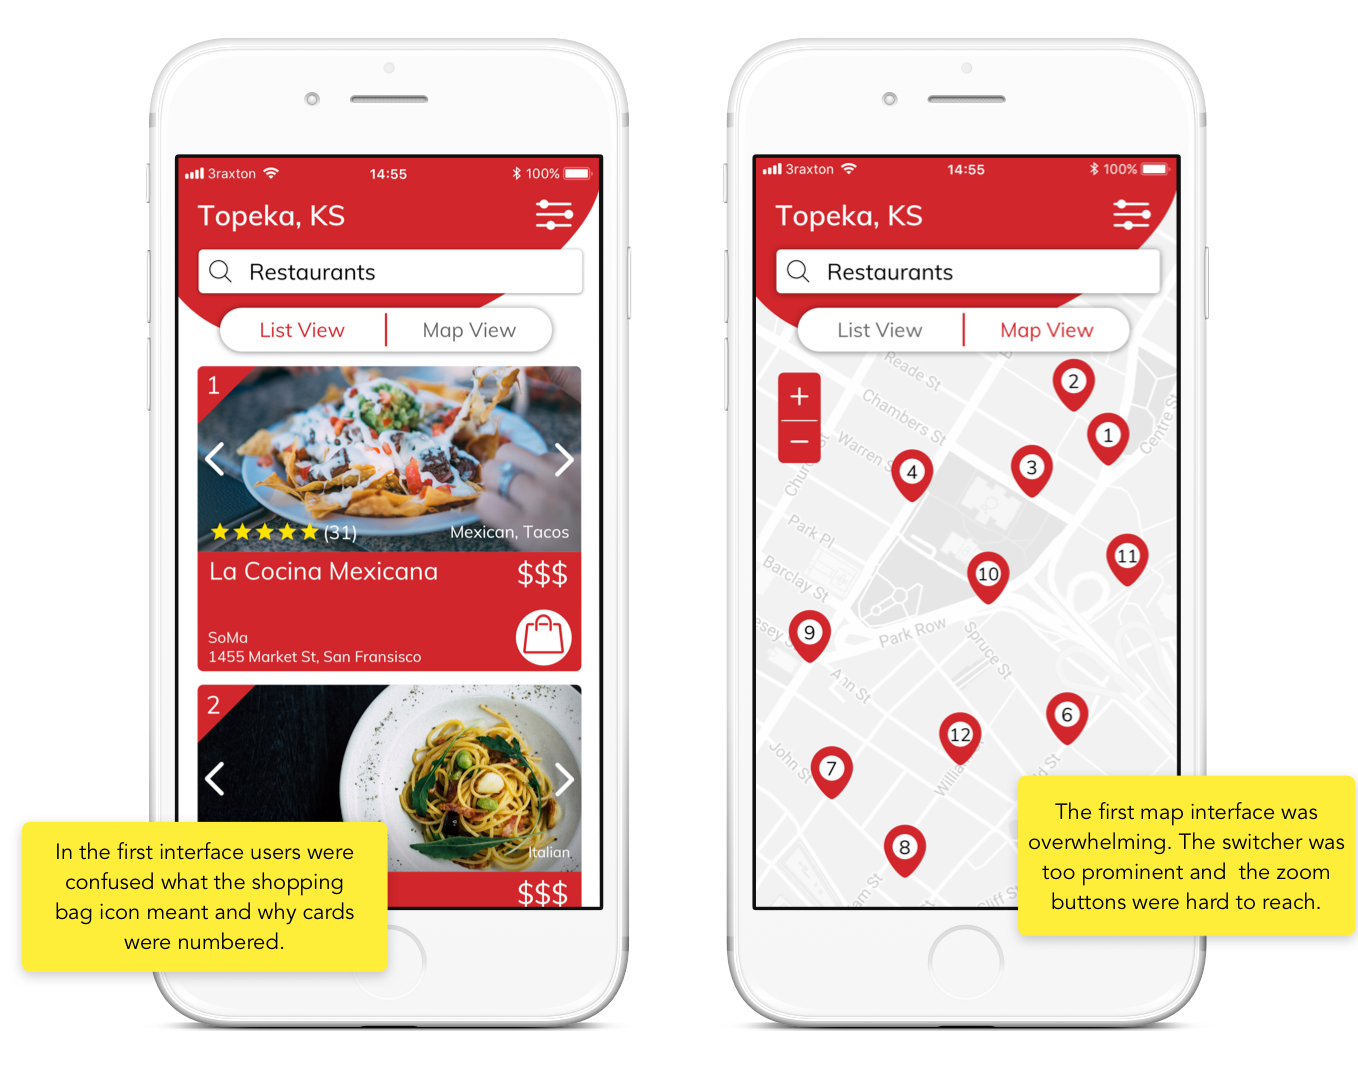 My Uber Design Exercise: Redesign Yelp's Mobile Web Interface